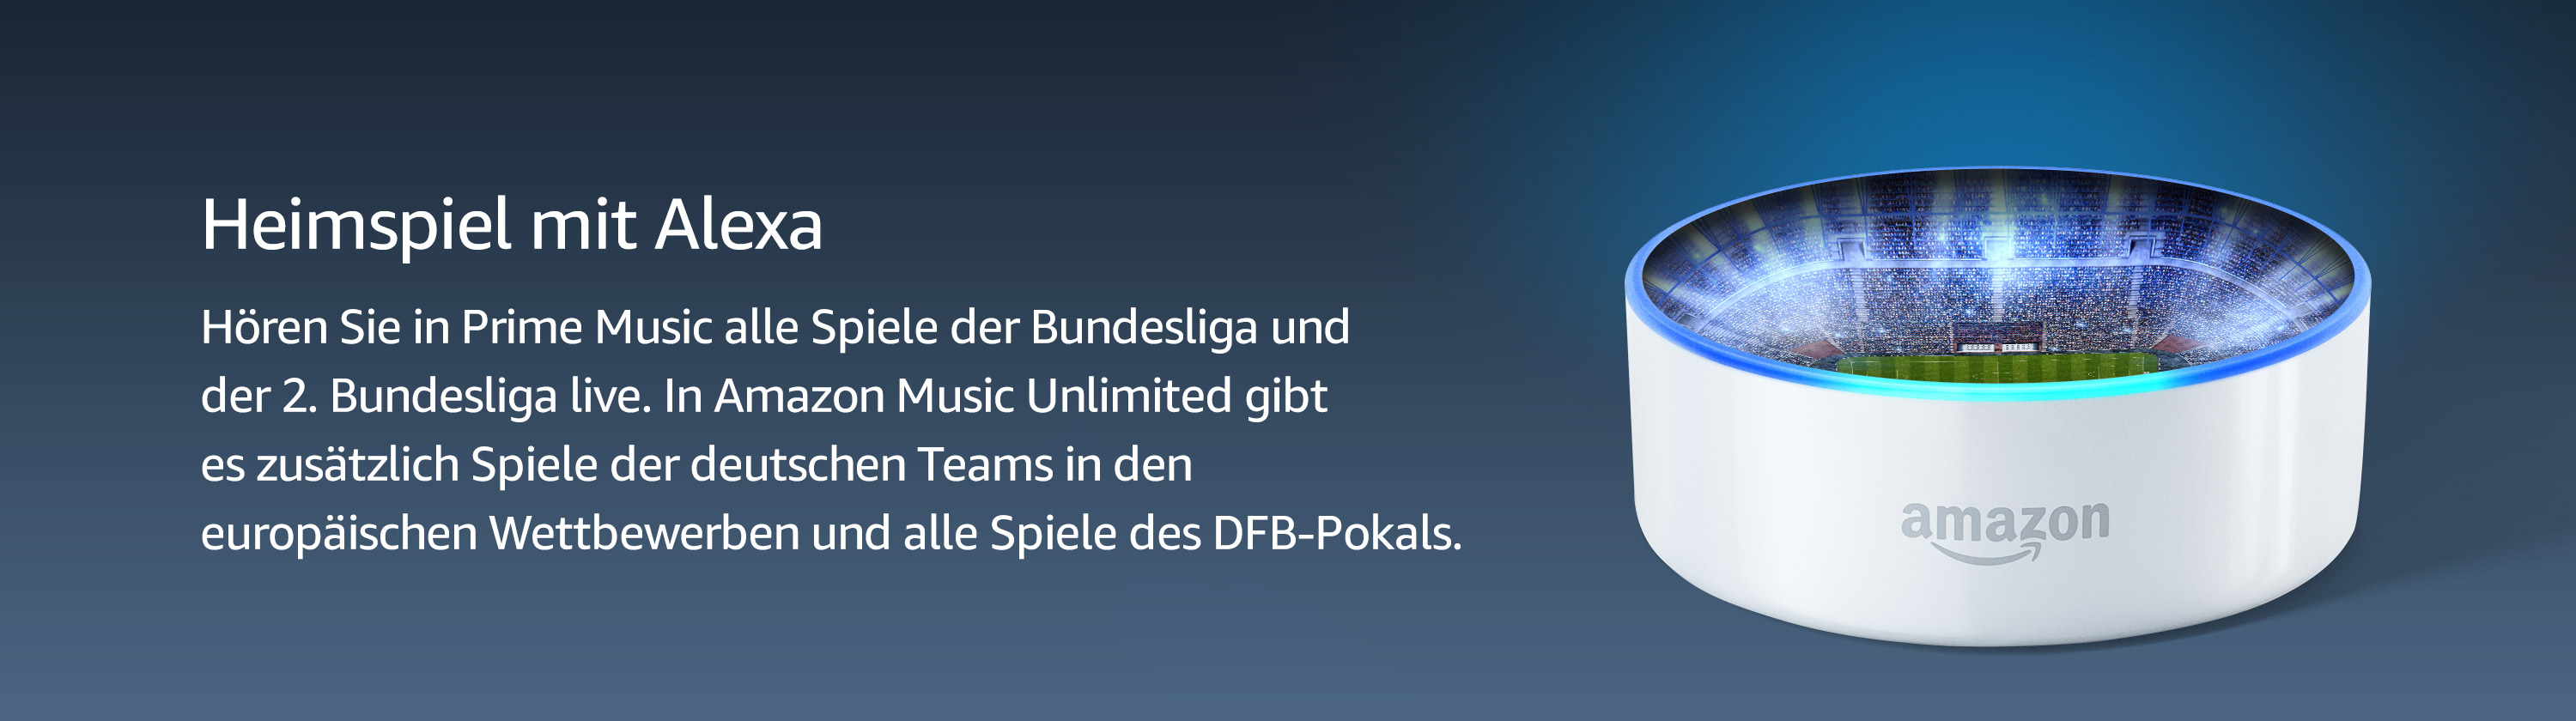 Bundesliga bei Amazon Music